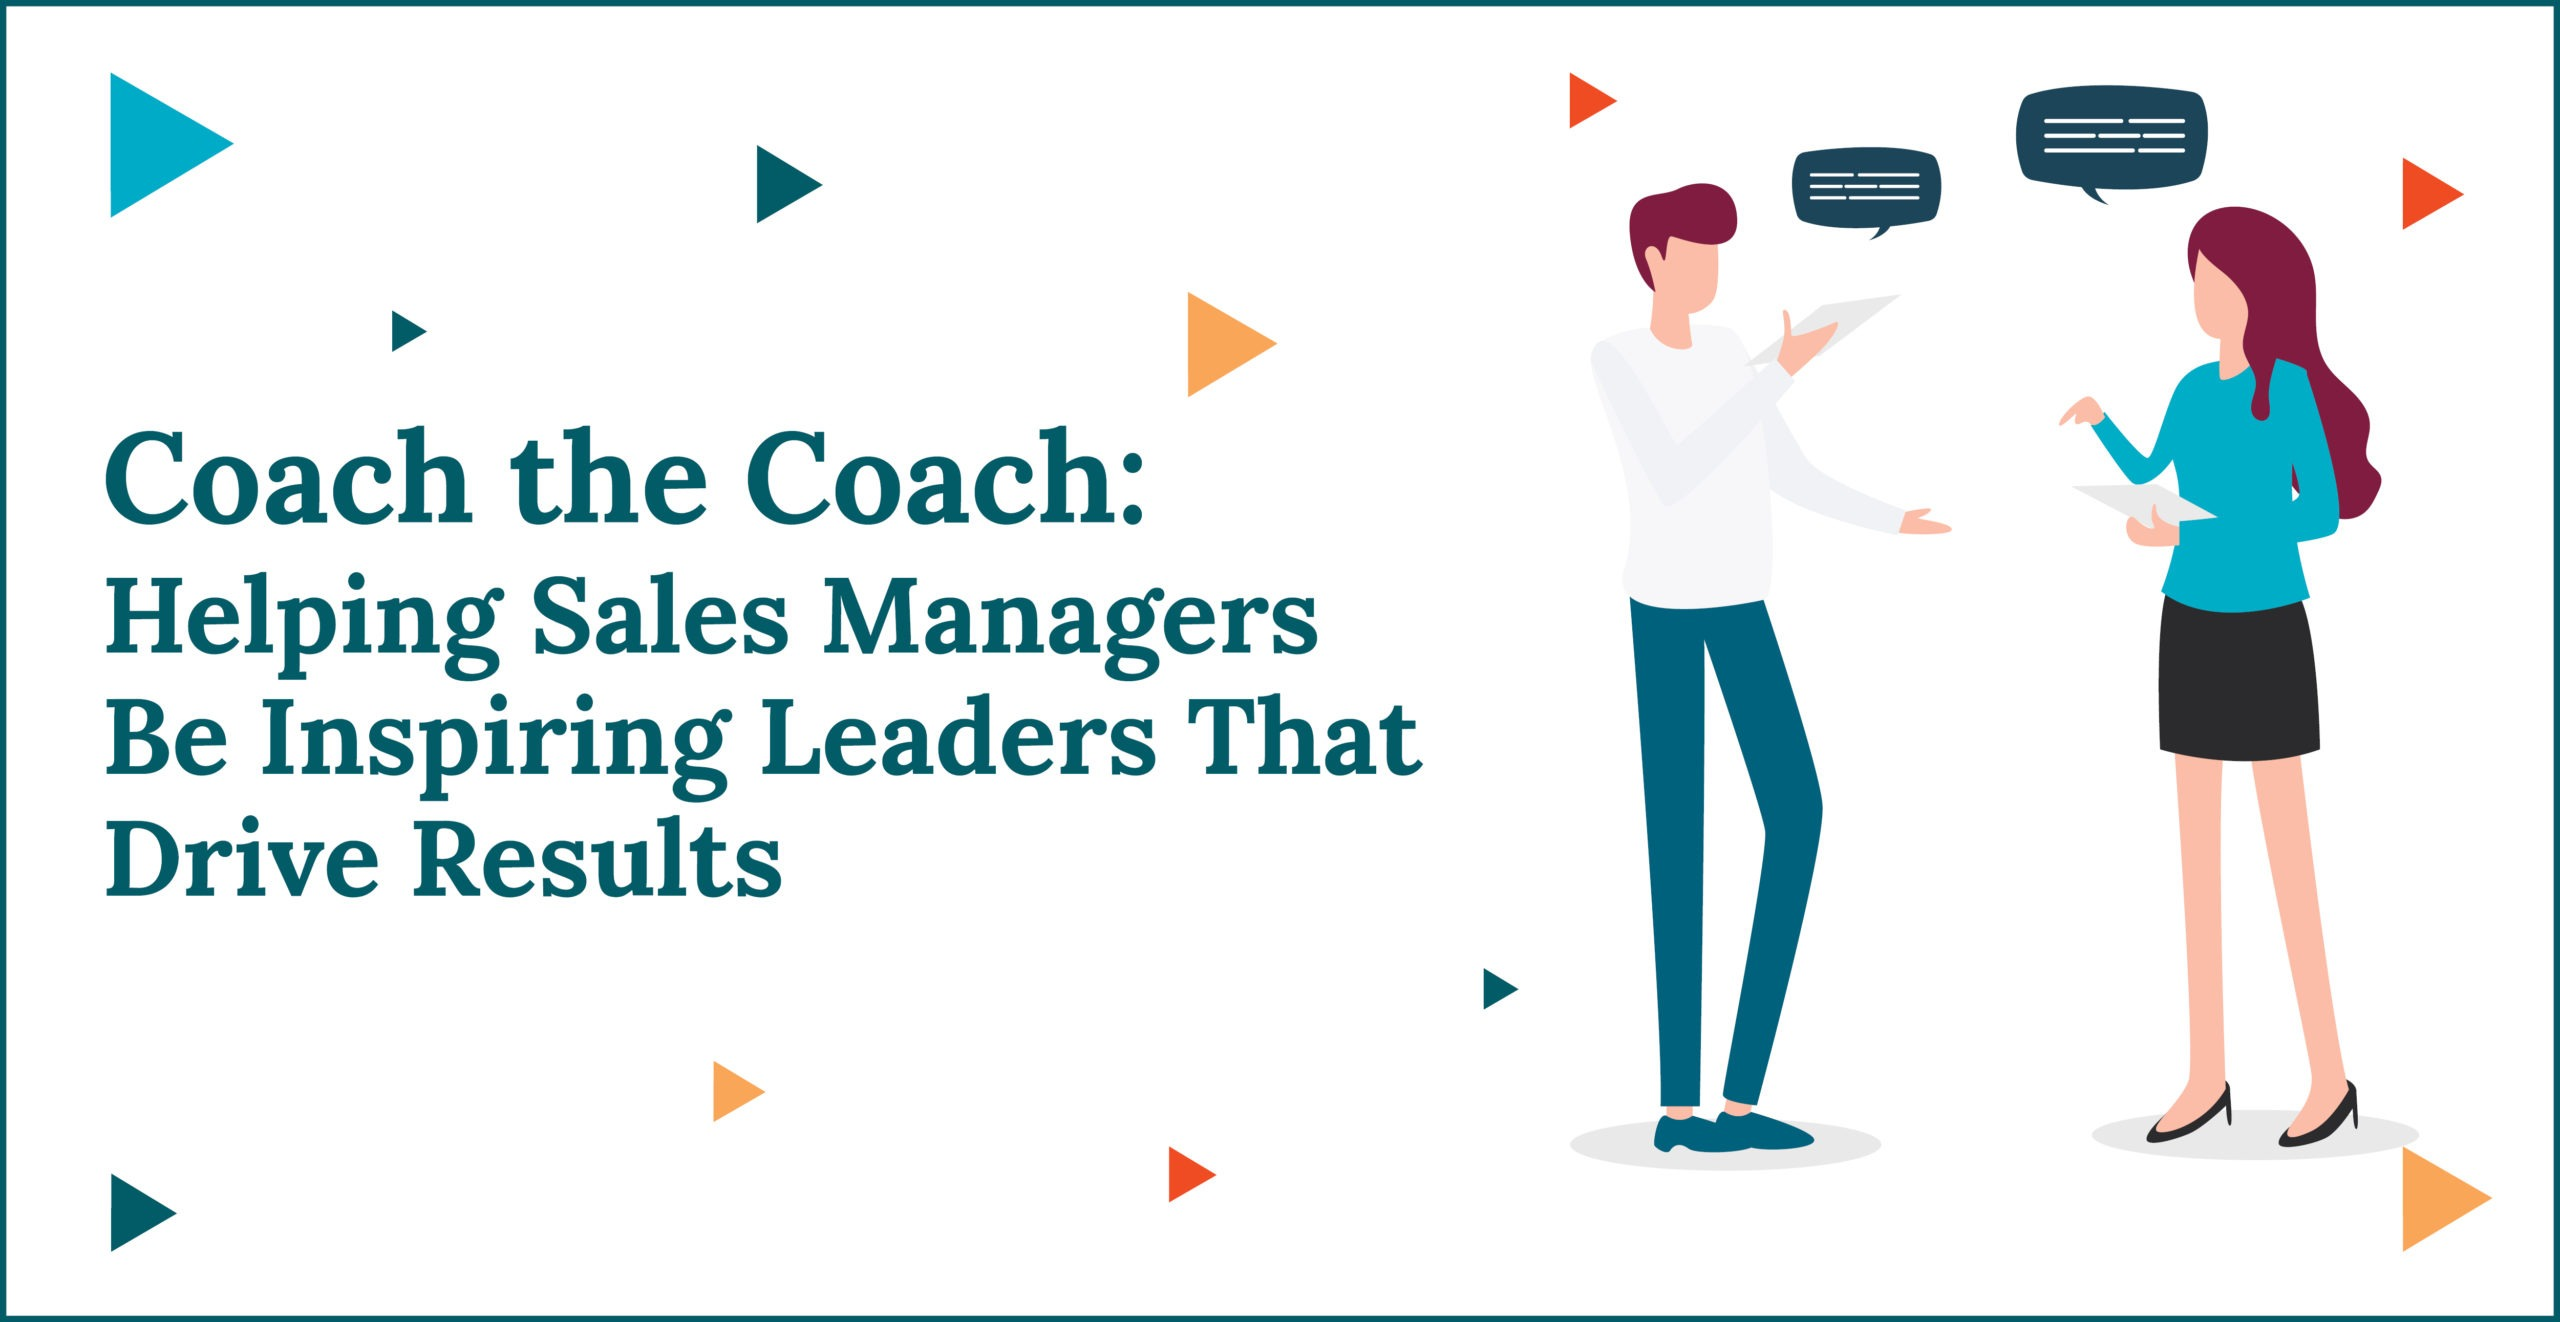 Coach the Coach: Helping Sales Managers Be Inspiring Leaders That Drive Results